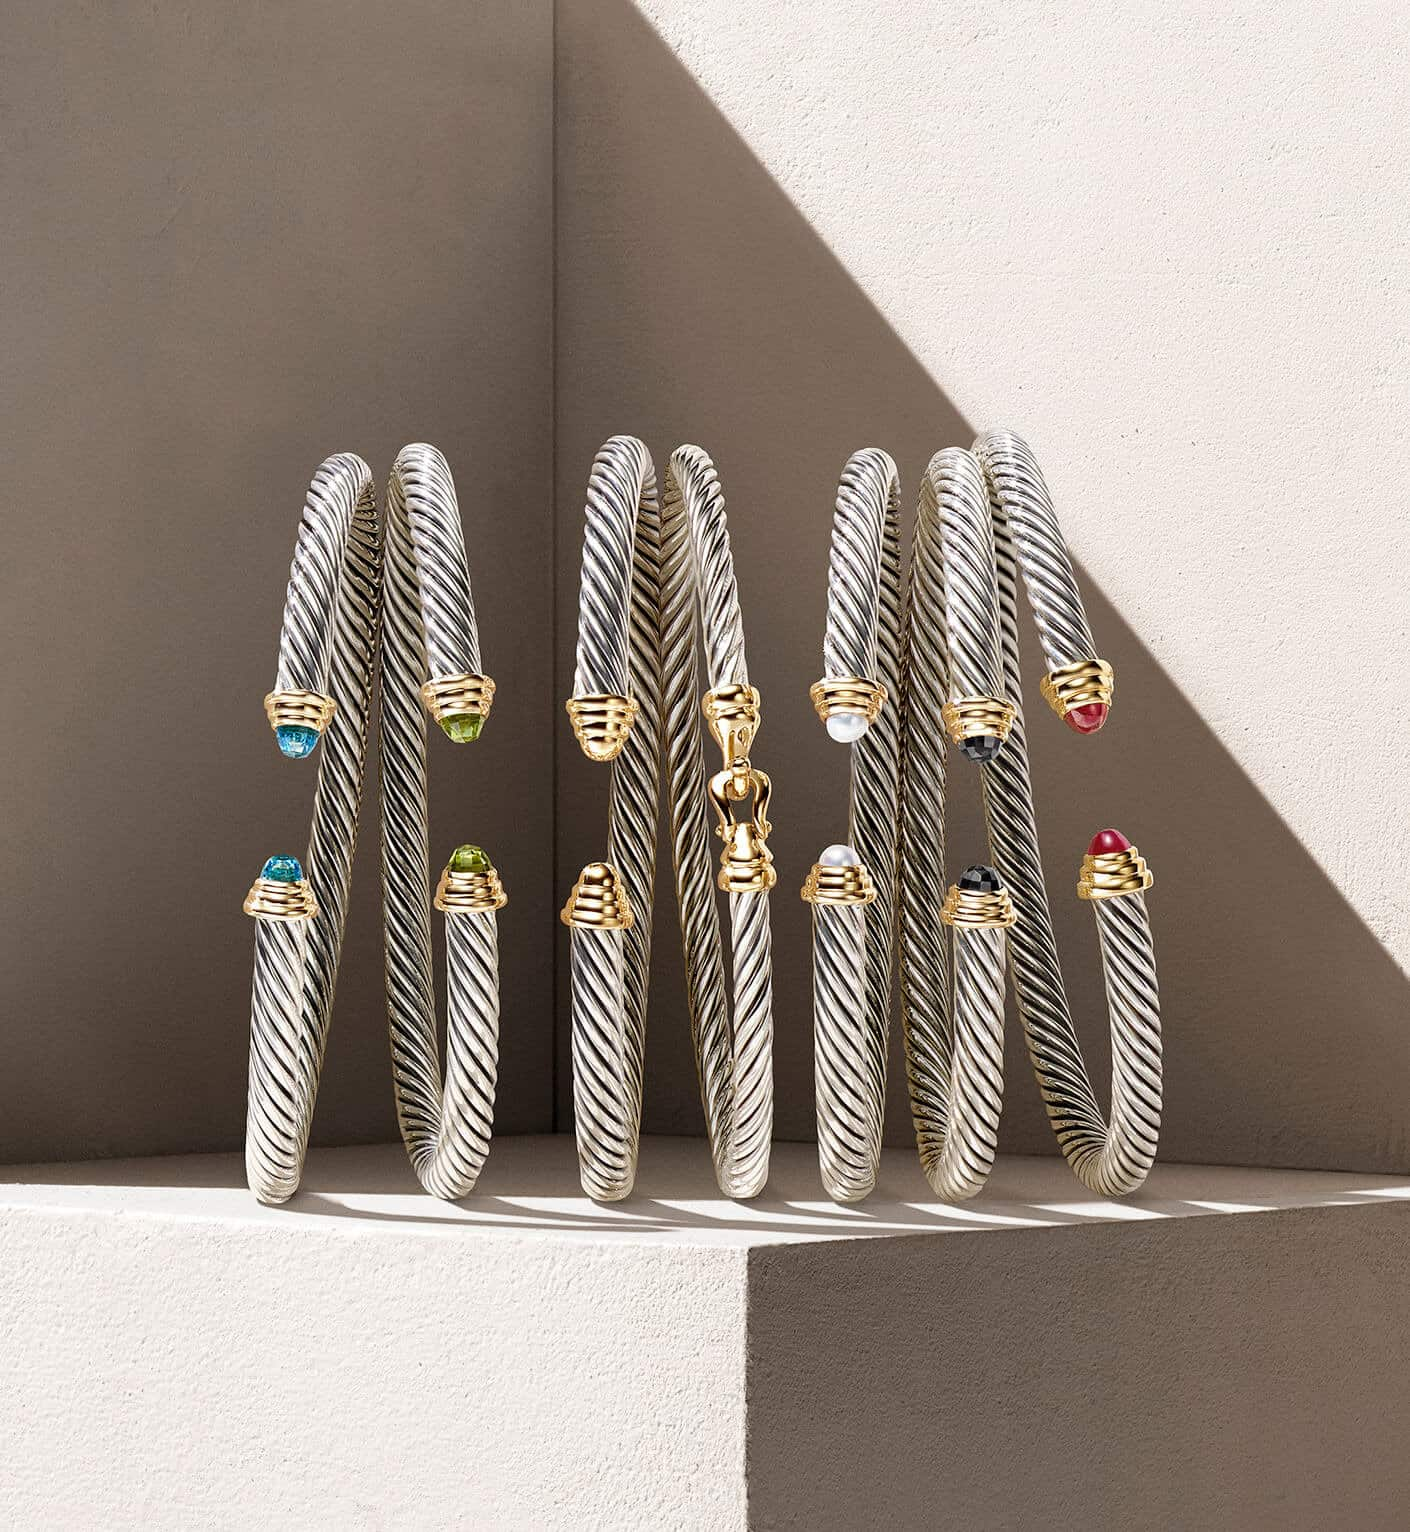 A color photograph shows seven David Yurman kids cable bracelets in sterling silver with 14k yellow gold and gemstones.